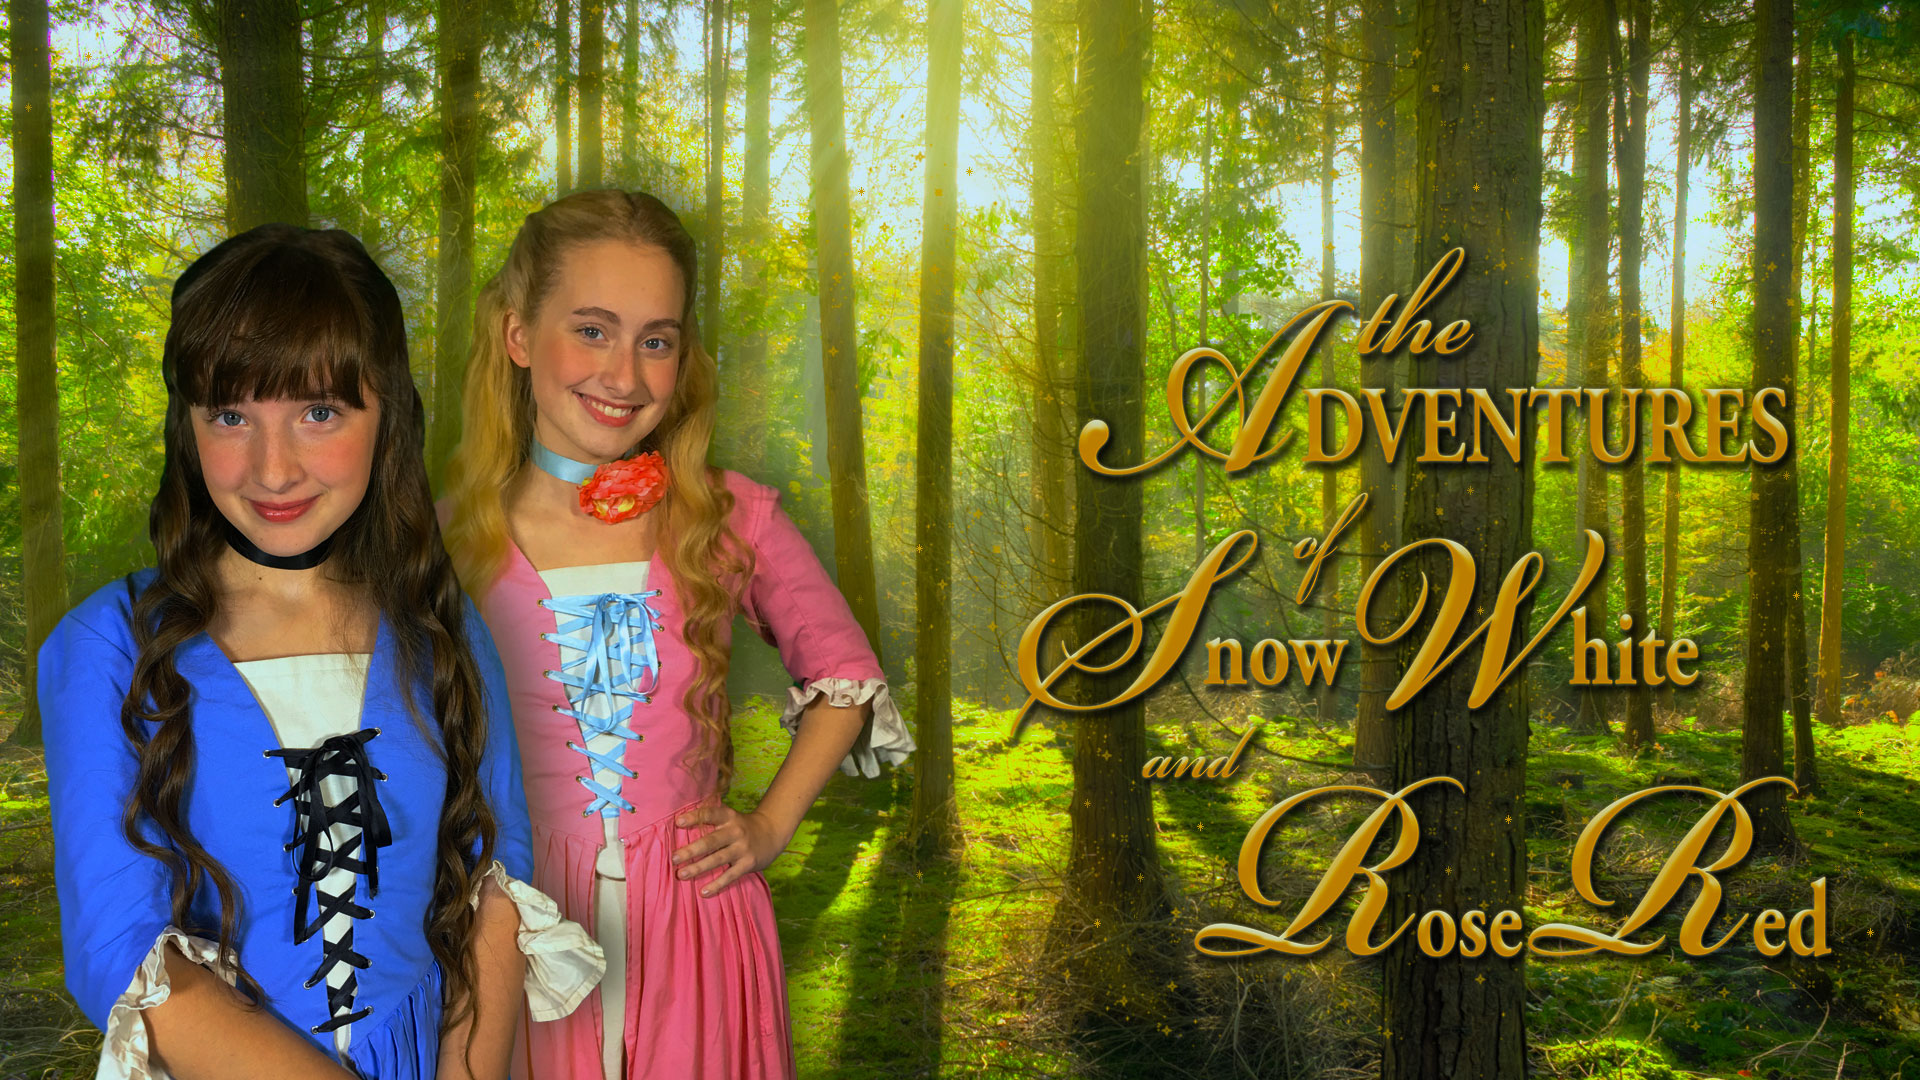 The Adventures of Snow White and Rose